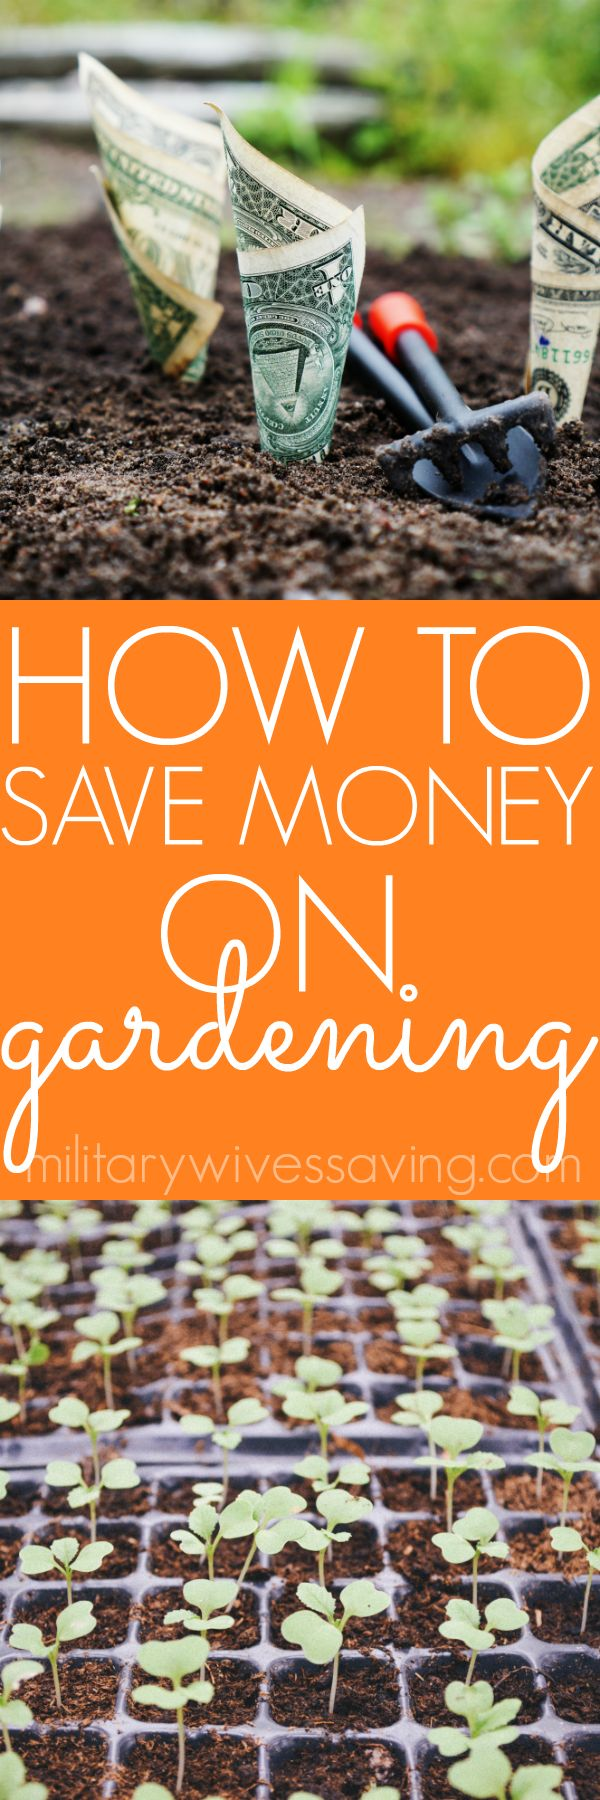 Great tips for how to save money on starting a garden (and should you do an indoor garden?) Add this to your DIY gardening boards!